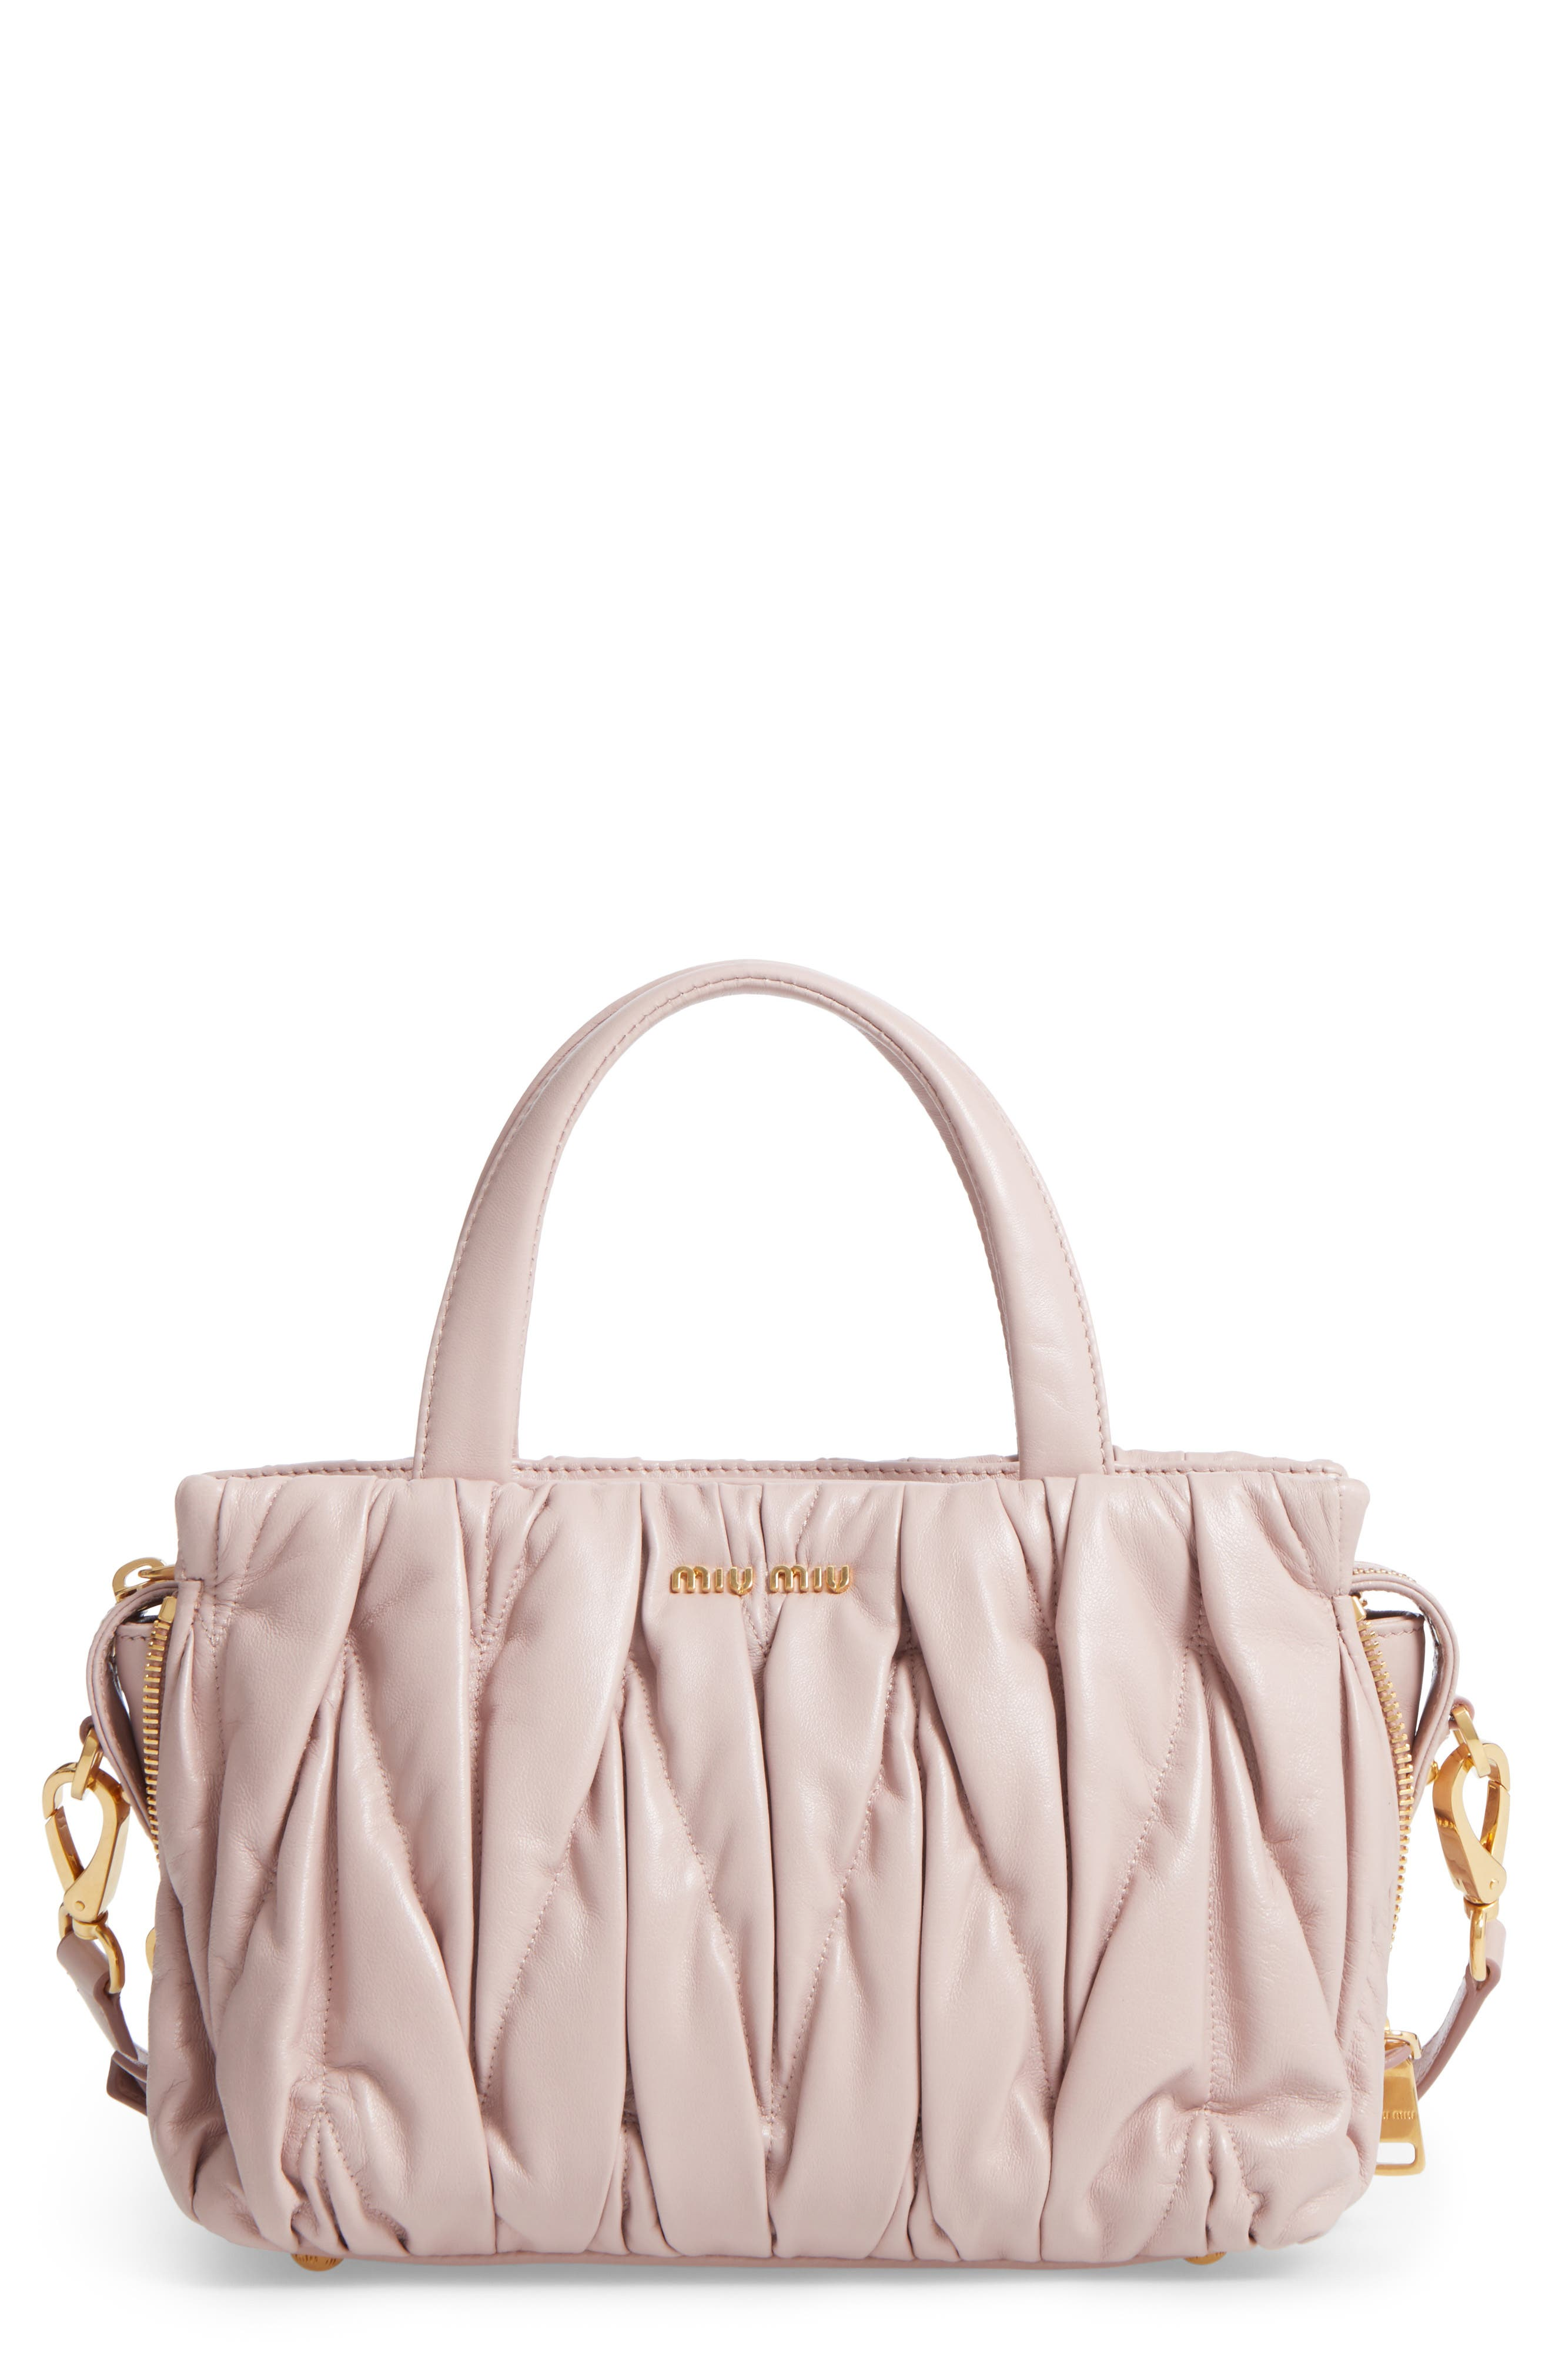 Small Matelassé Nappa Leather Satchel,                         Main,                         color, Light Pink